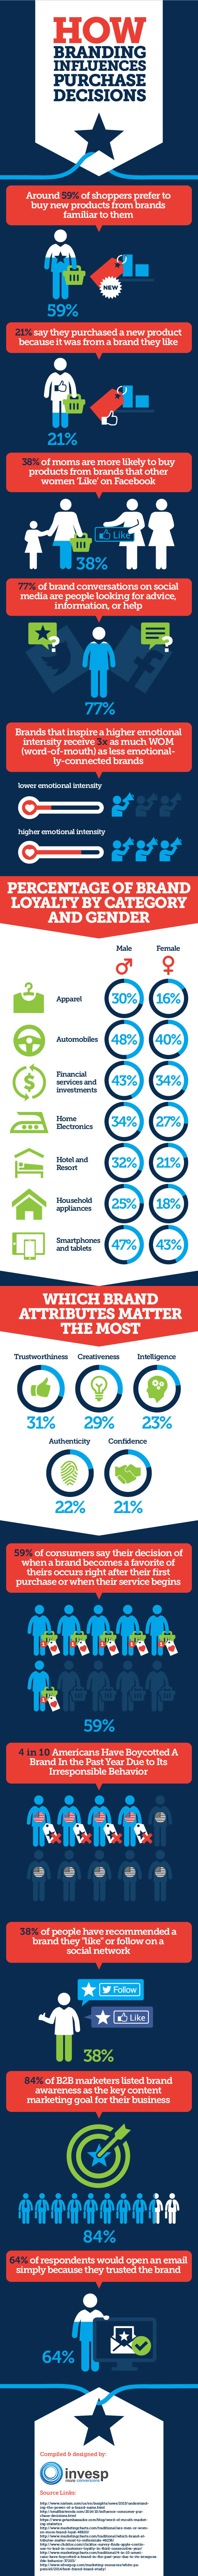 Infographic outlines a range of brand awareness tips